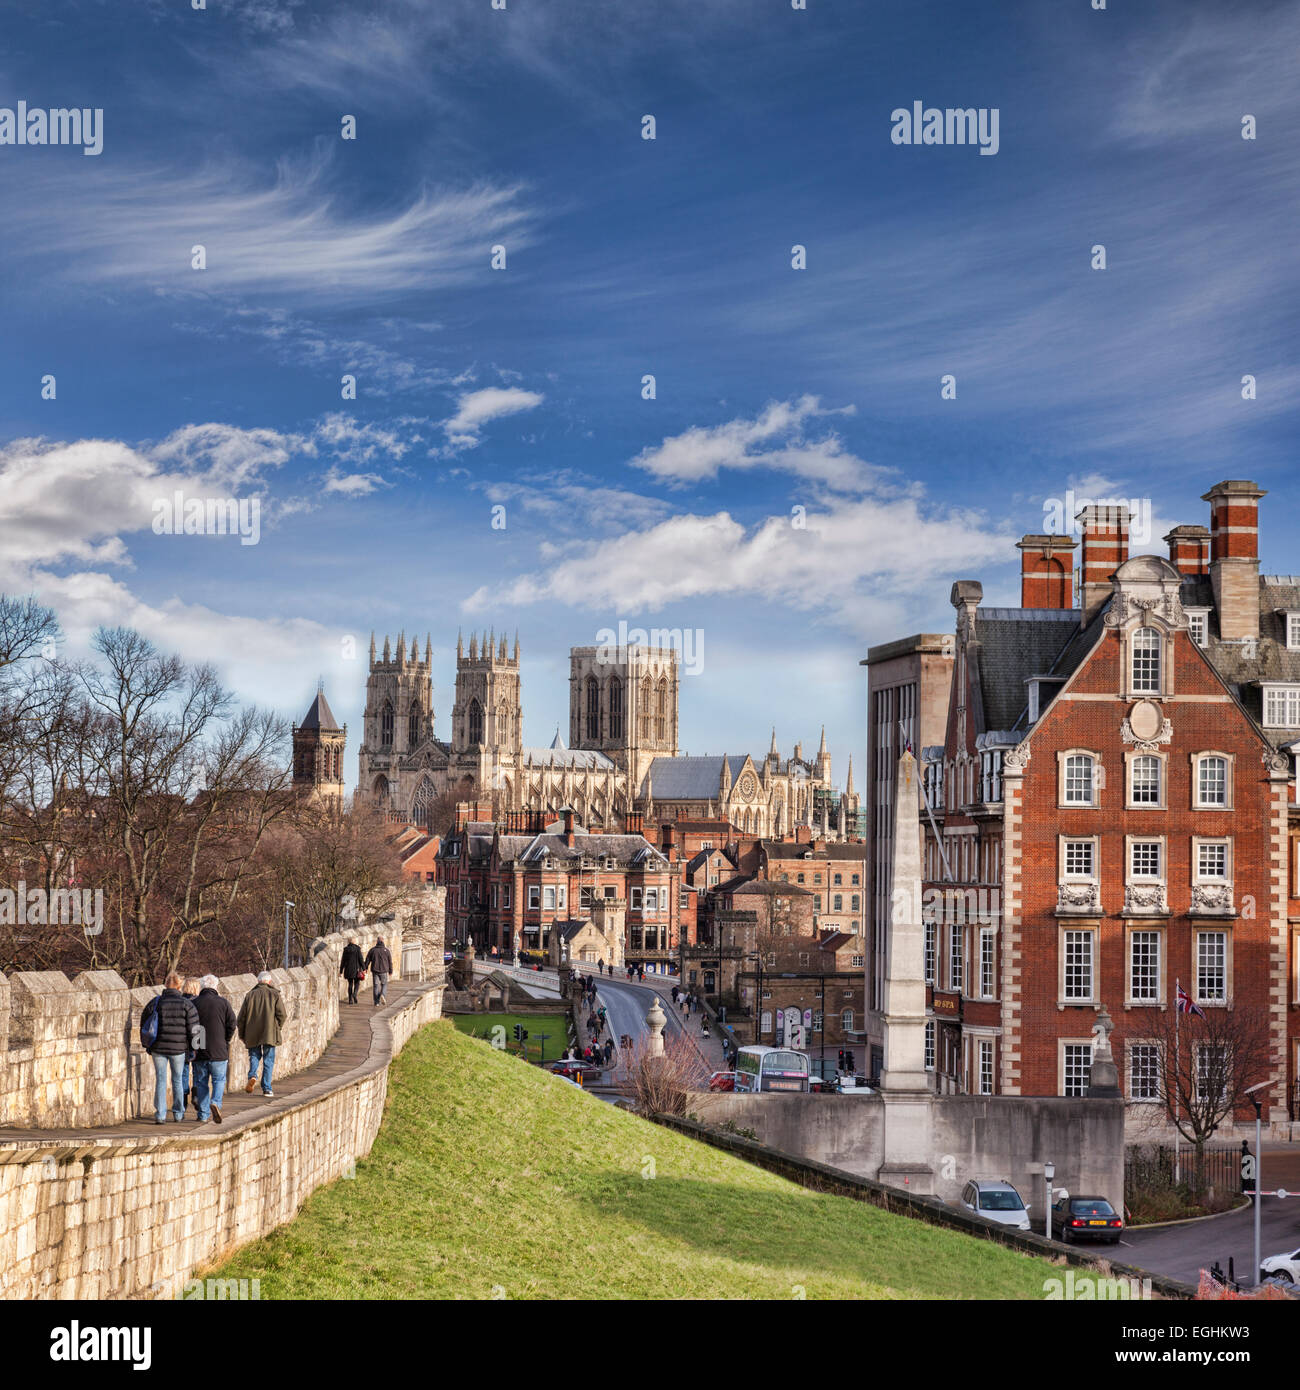 The city of York, North Yorkshire, England, a view along the city wall towards York Minster, tourists walking along - Stock Image